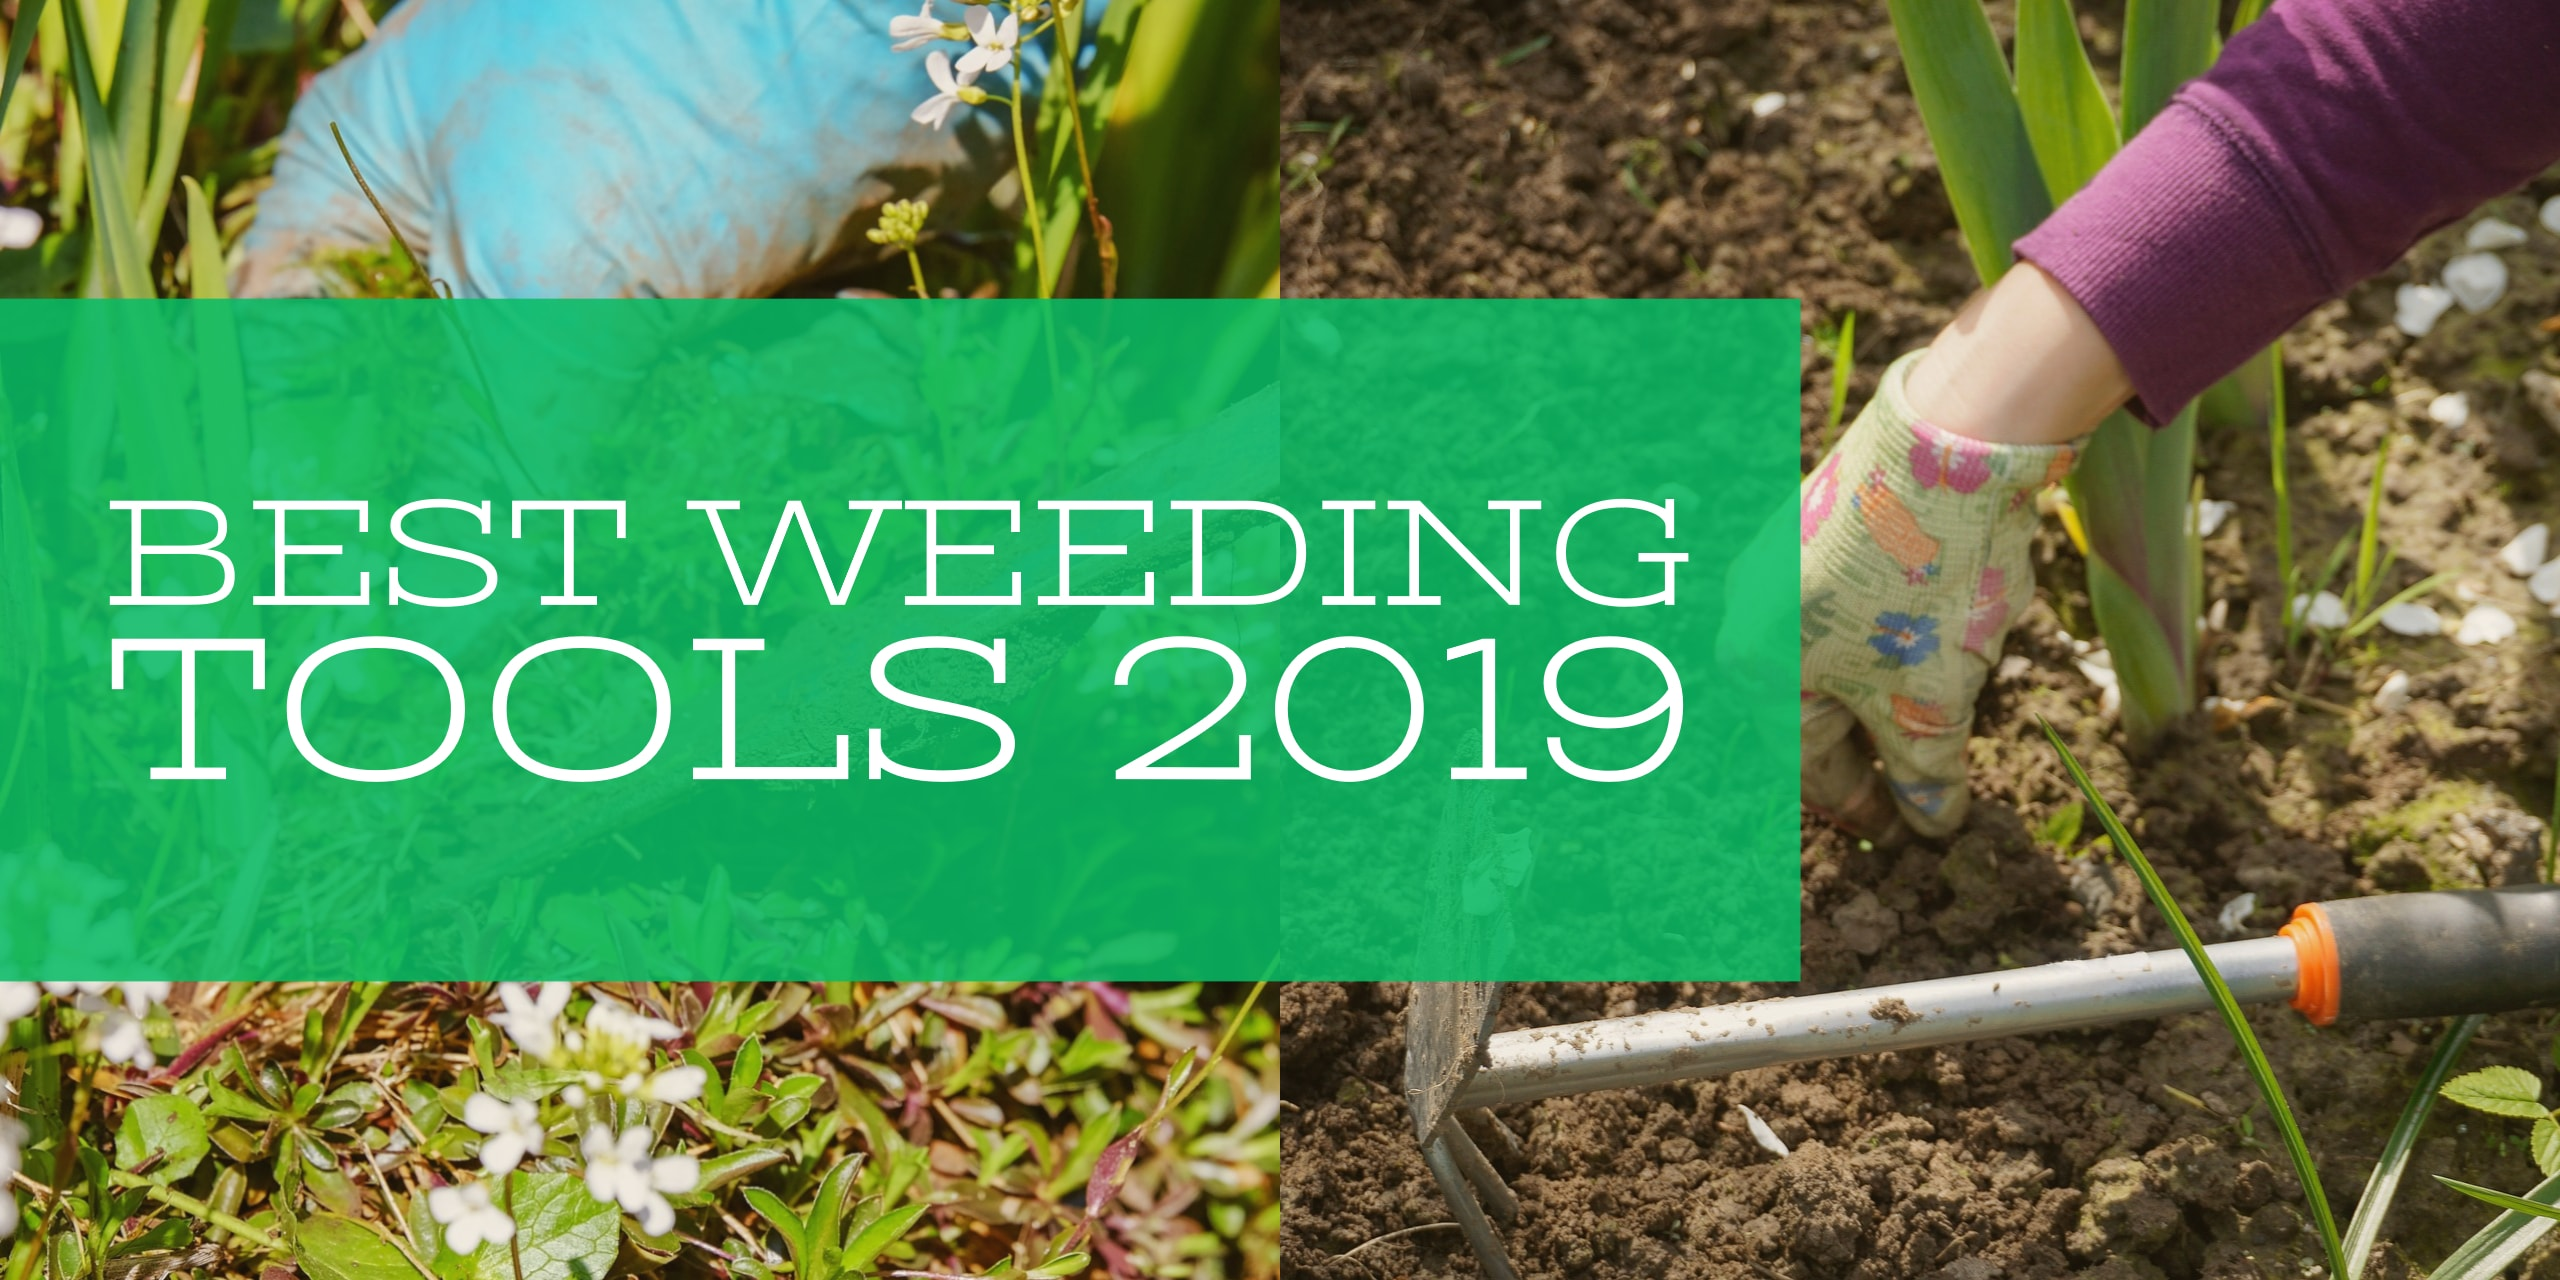 10 Best Weeding Tools 2020 Reviews, Ratings & Buying Guide